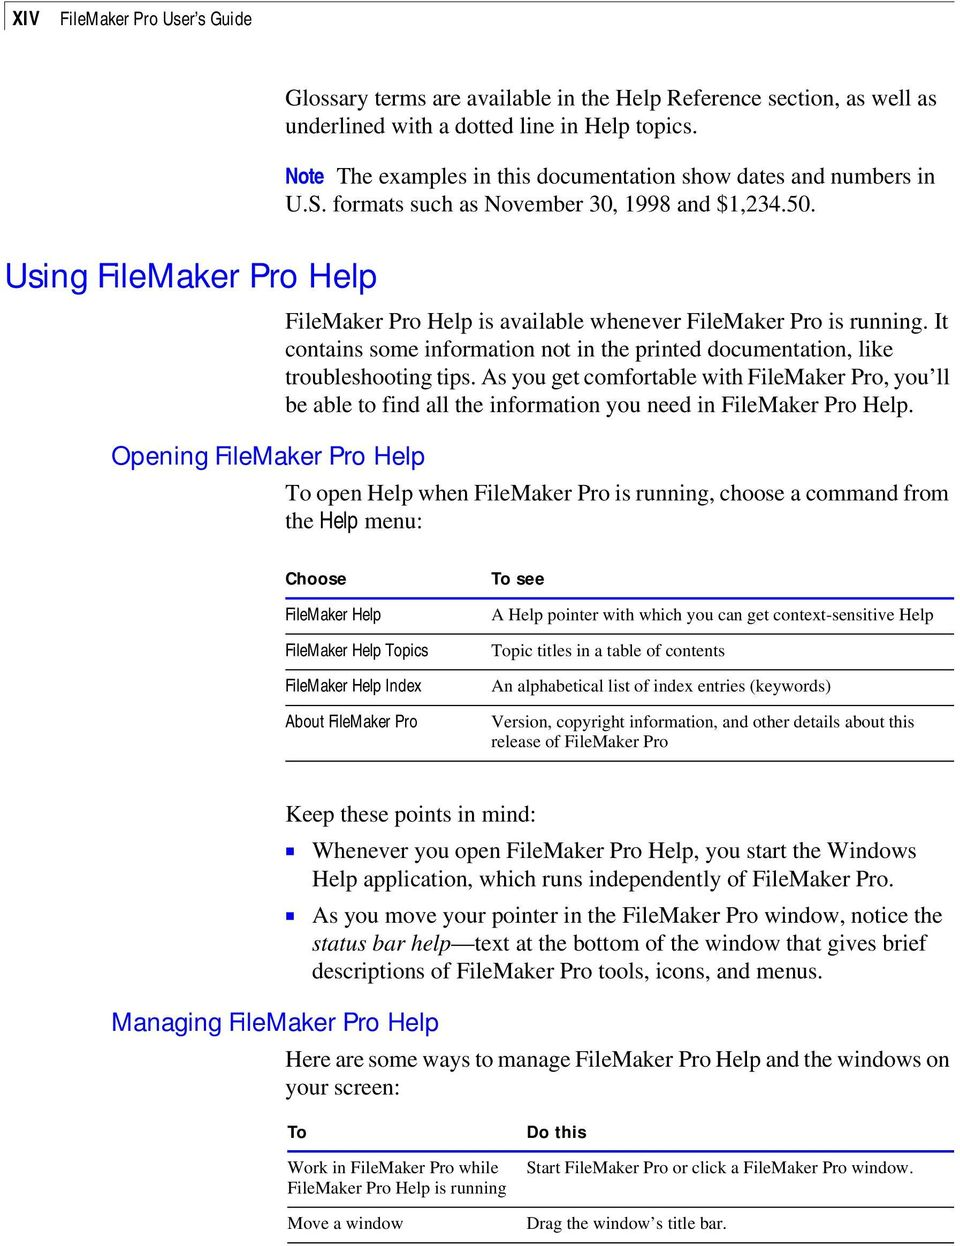 Chapter 1: FileMaker Pro basics - PDF